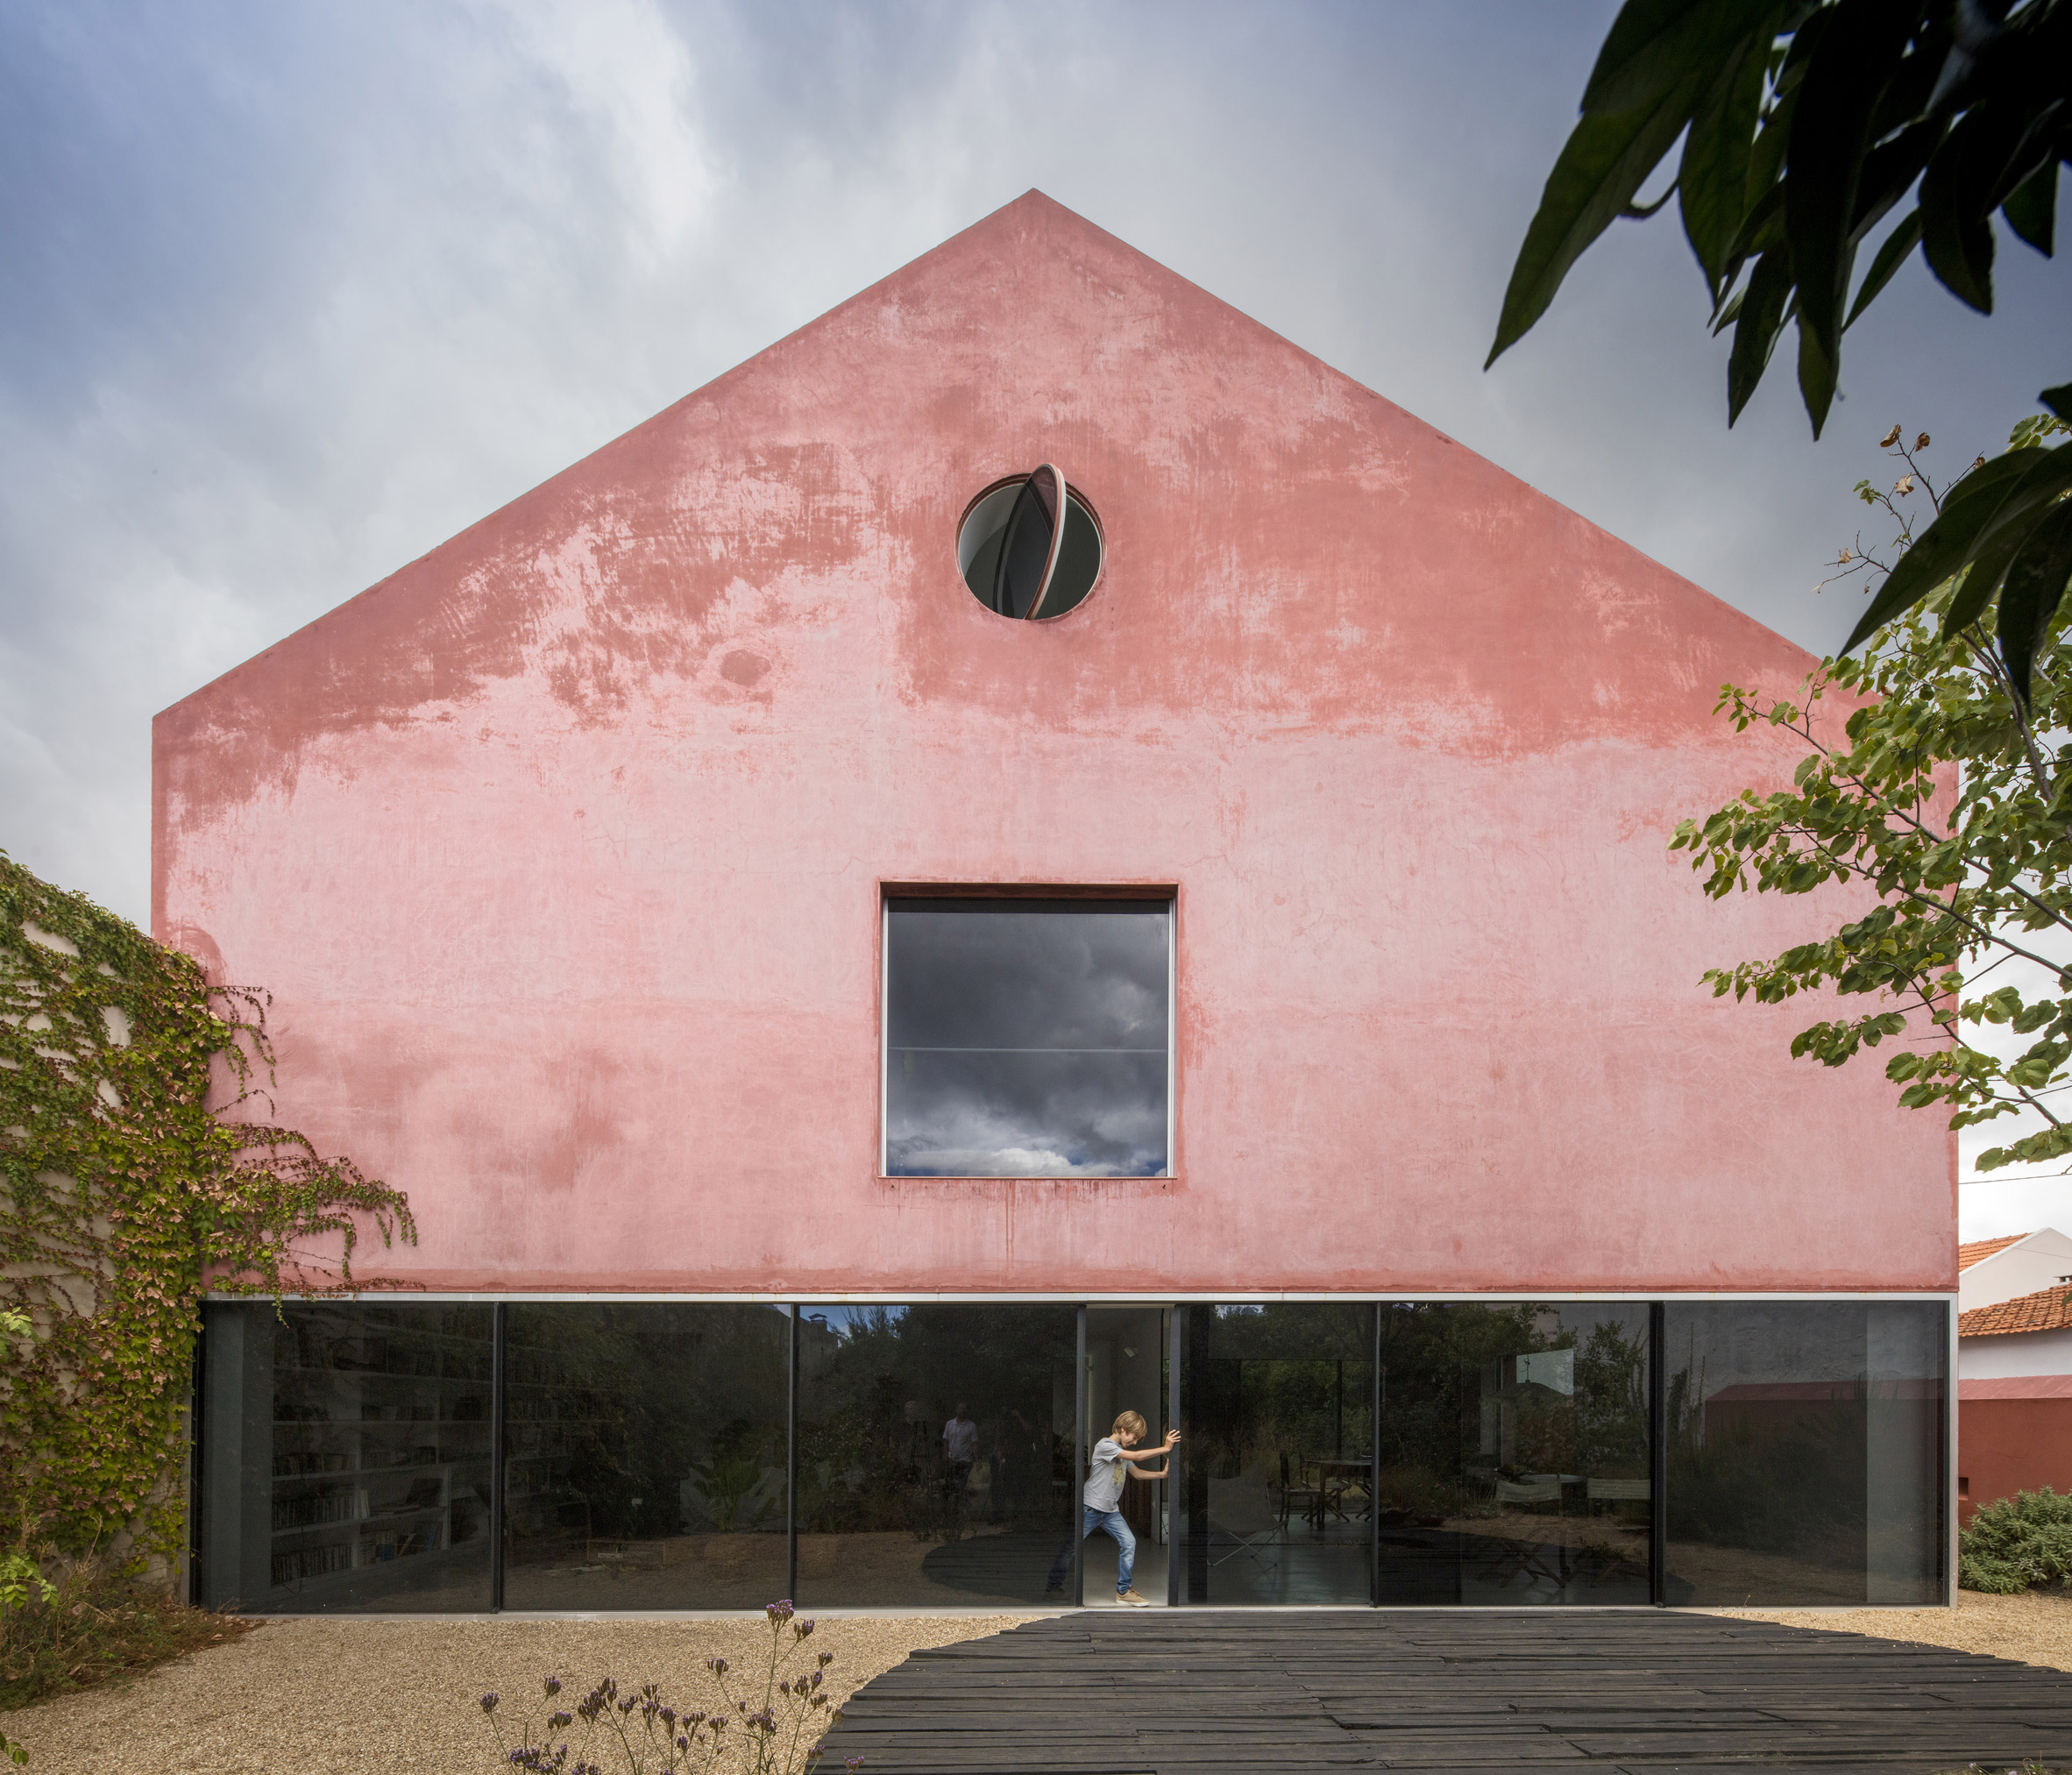 Extrastudio transforms Portuguese winery into house covered with rough red mortar